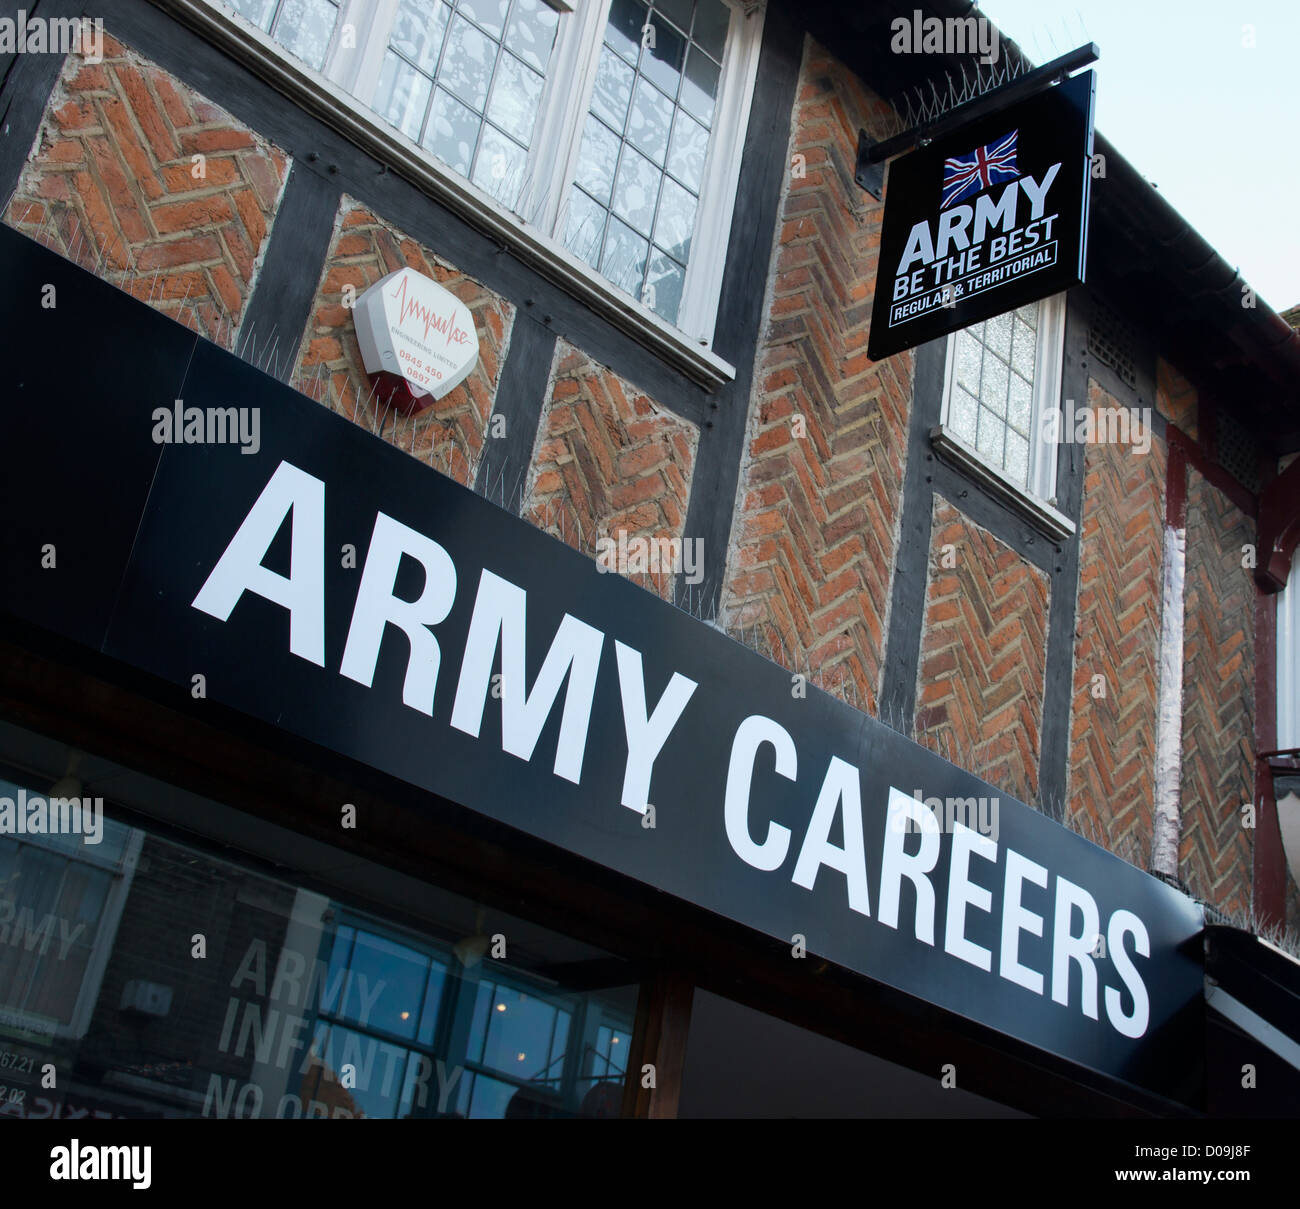 Army Careers Office Canterbury England Be the Best Stock Photo